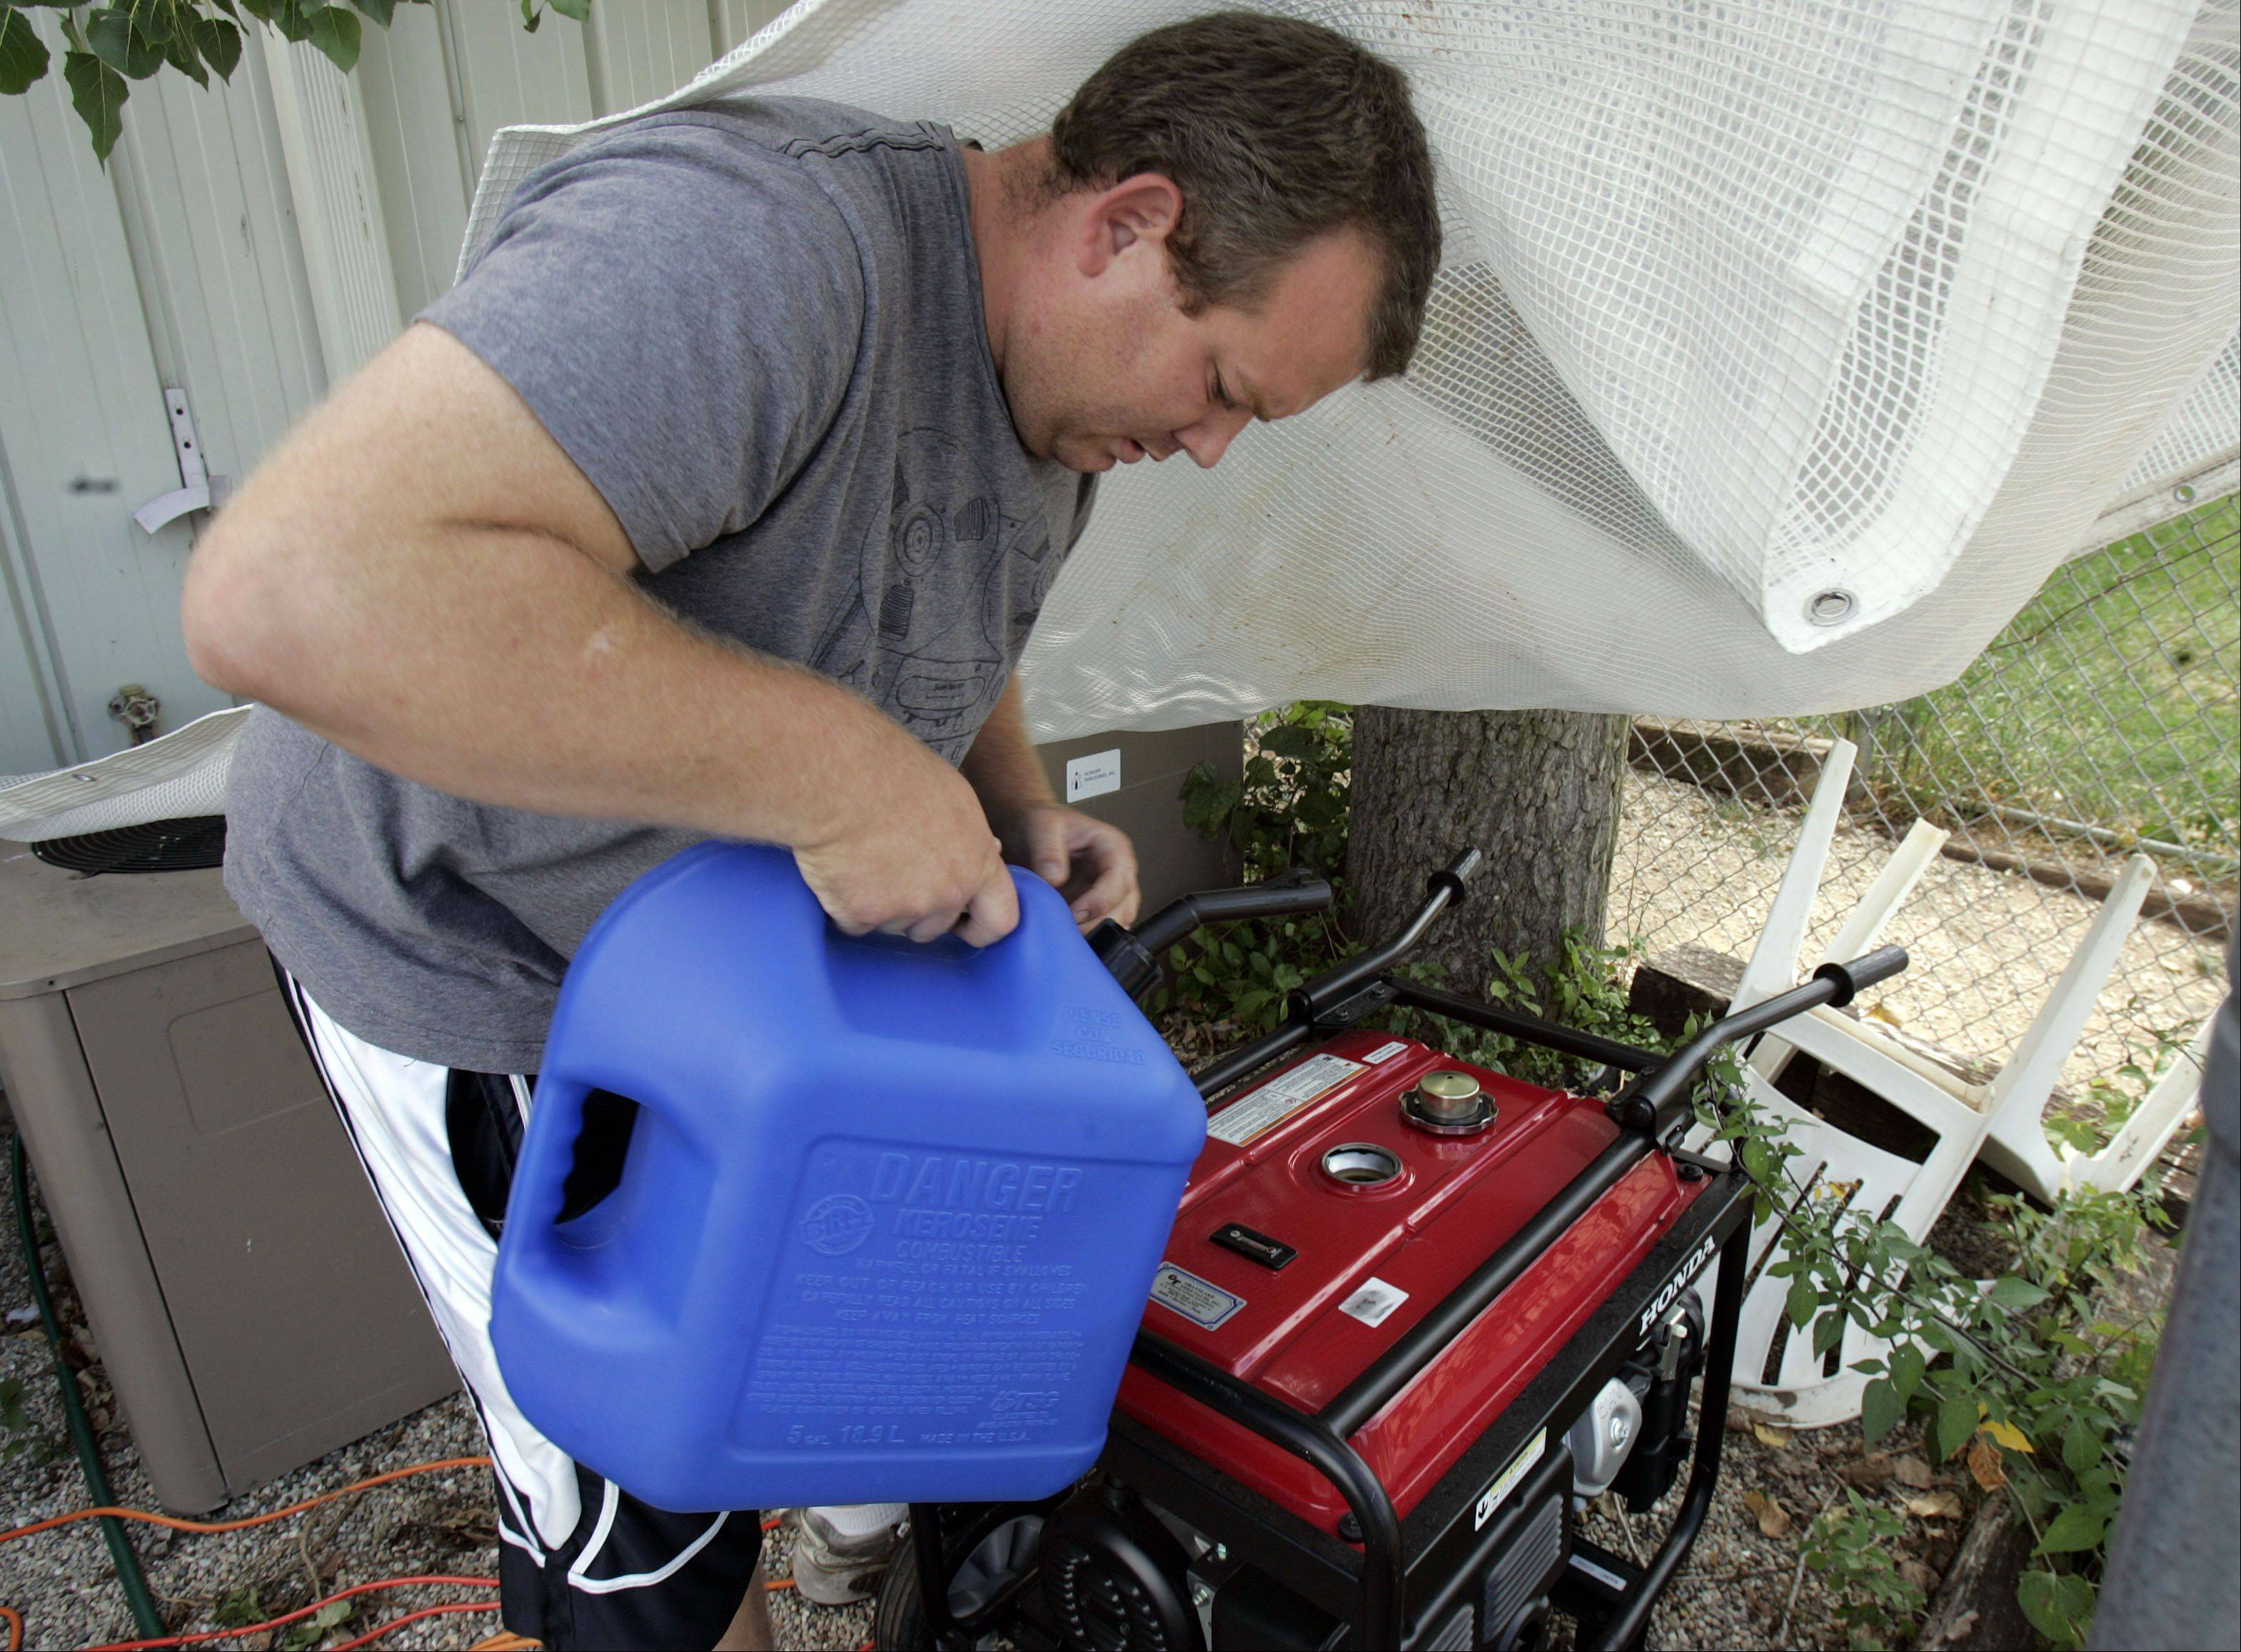 Save-A-Pet staff member Teig Evans fills a generator with gasoline Wednesday at the Grayslake shelter. Portable generators provide enough power for fans and refrigerators as the facility remained without power.